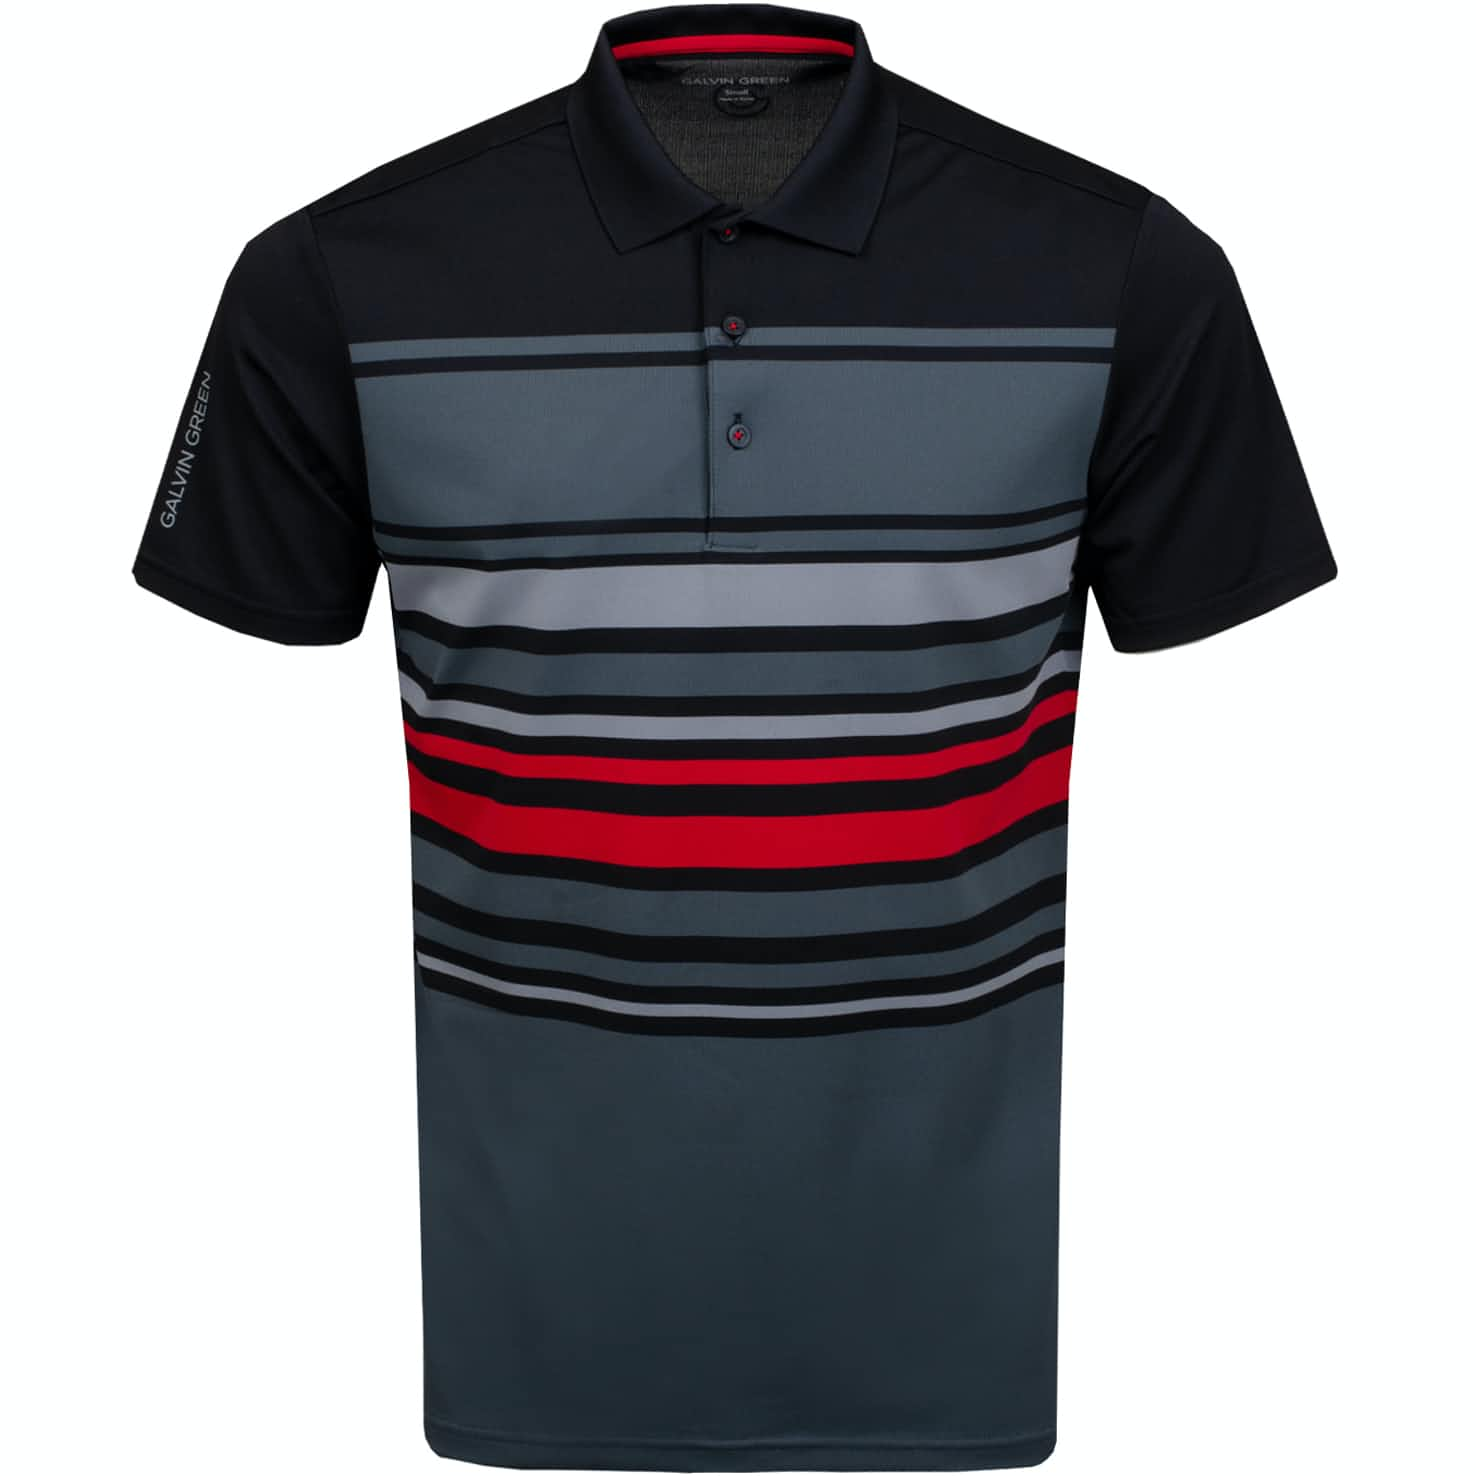 Miguel Ventil8+ Polo Iron Grey/Black/Red - AW19